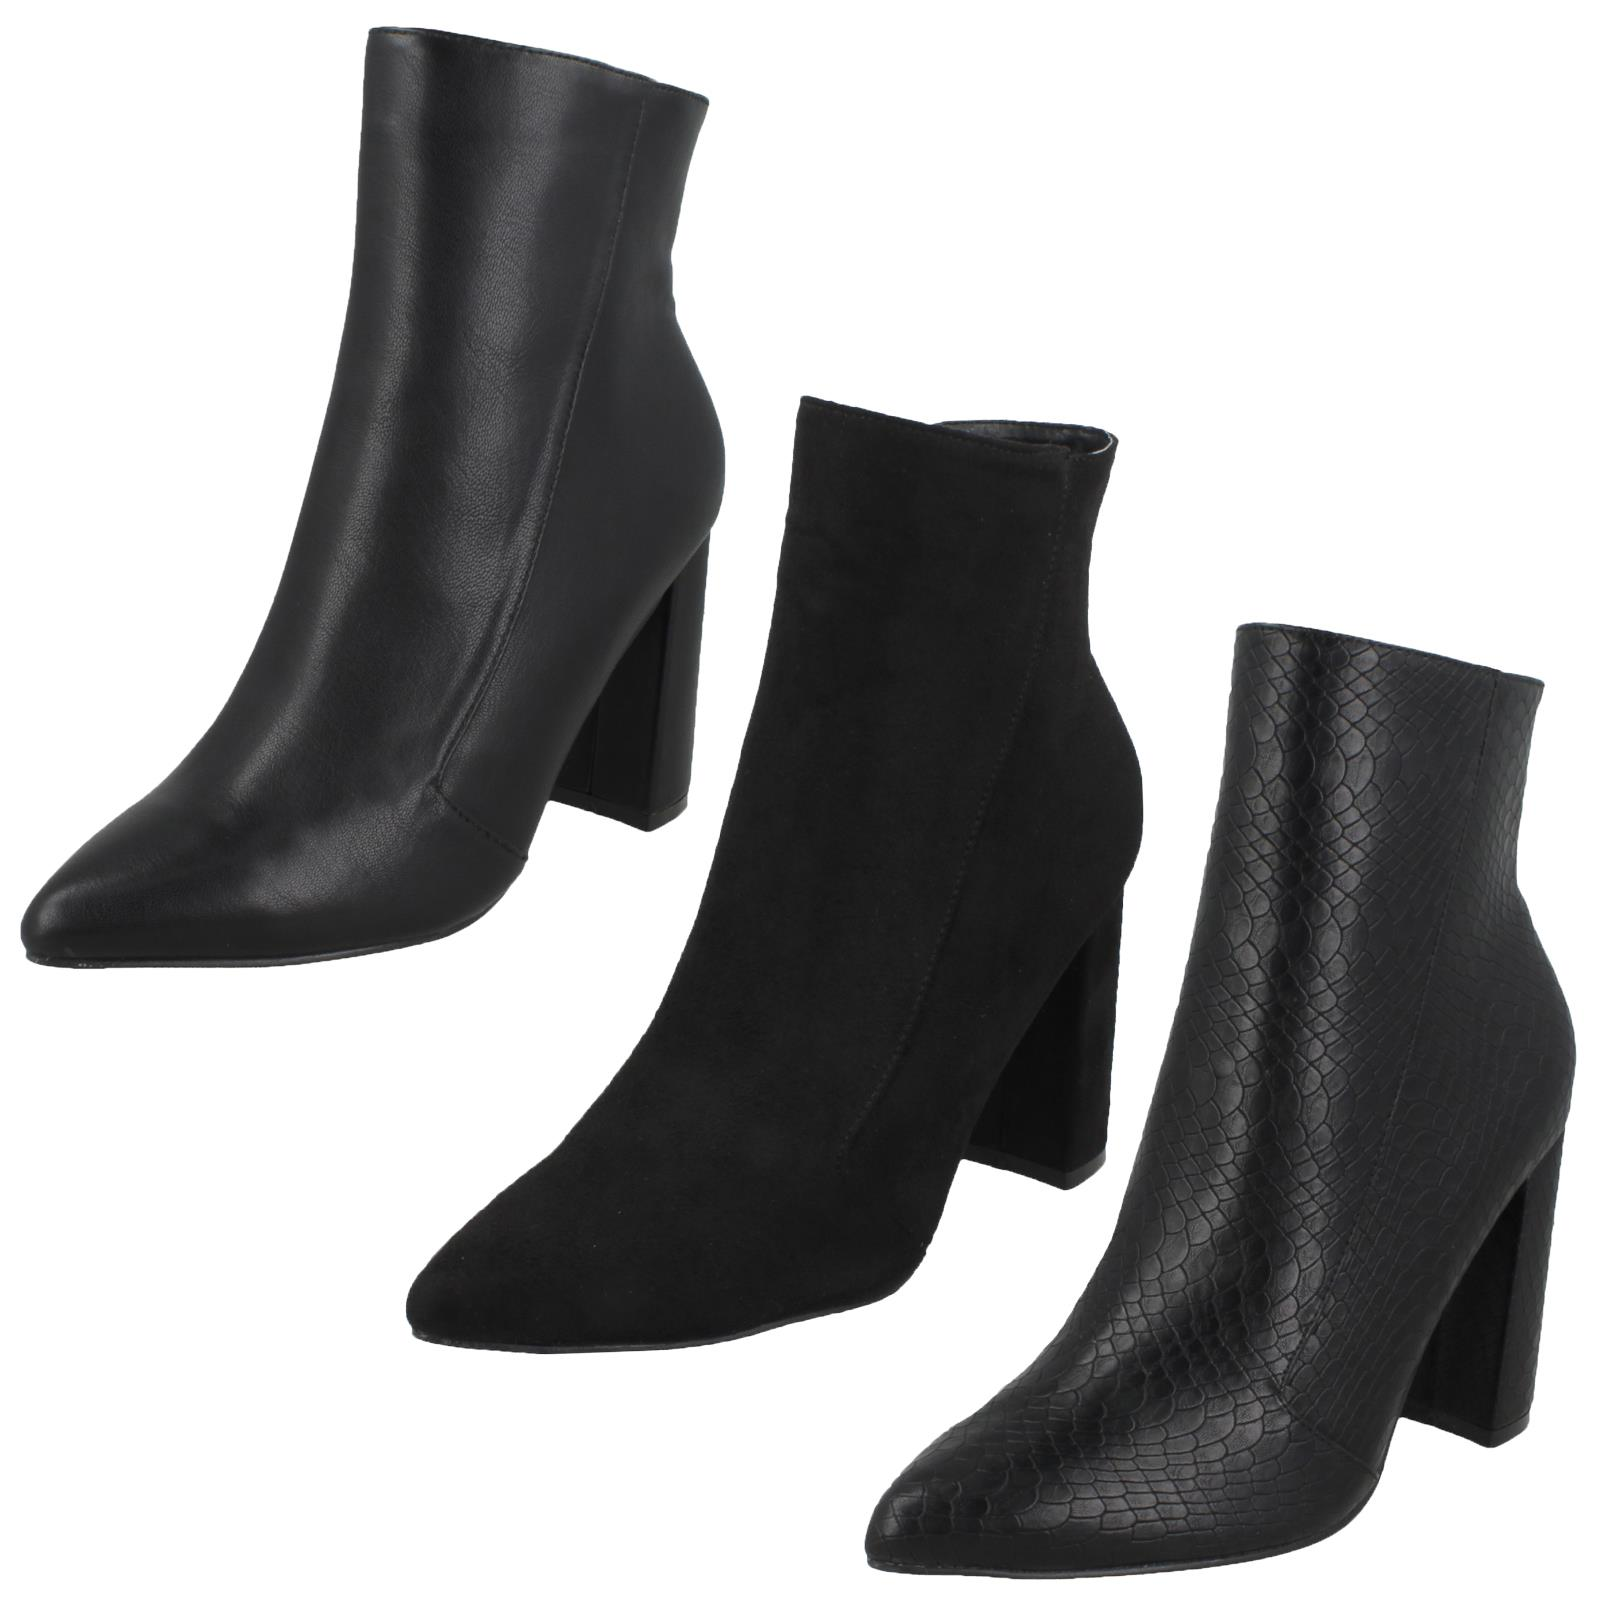 Spot On Womens//Ladies Zip Up Ankle Boots With Tassel Detail KM597